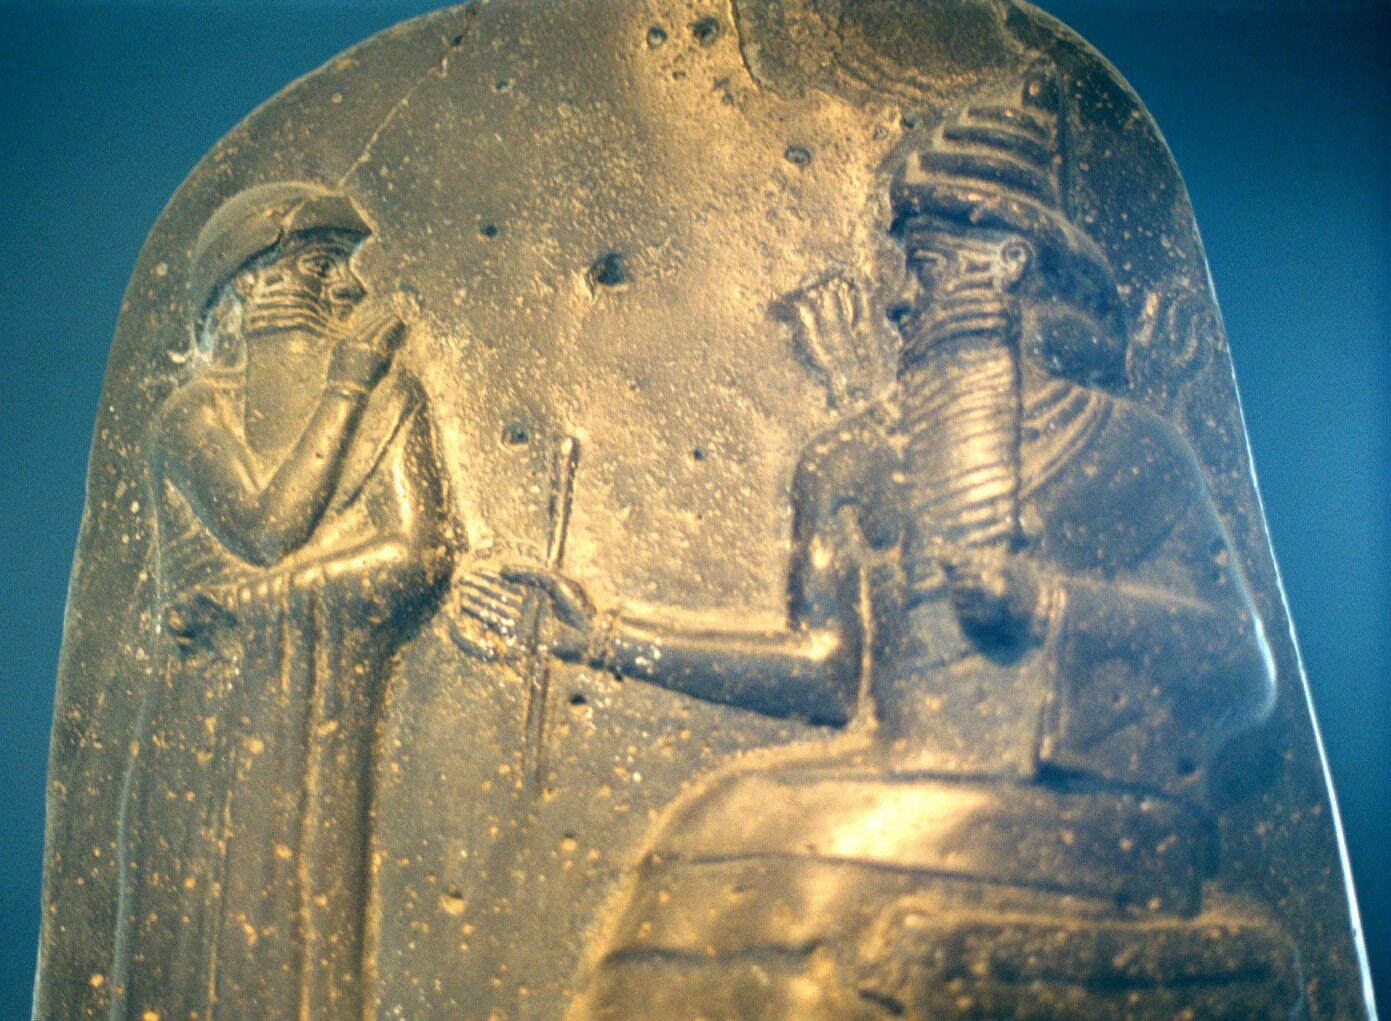 "2gg - Hammurabi receives the Great Laws, the time when the sons of god(s) came down from Heaven - Nibiru, created mankind in their image & their likeness, had sex with the daughters of men, produced a mixed-breed offspring of giants that lived a very long time, who became the ""Heroes of old, men of renown"", 1st kings of the great cities established by the gods"